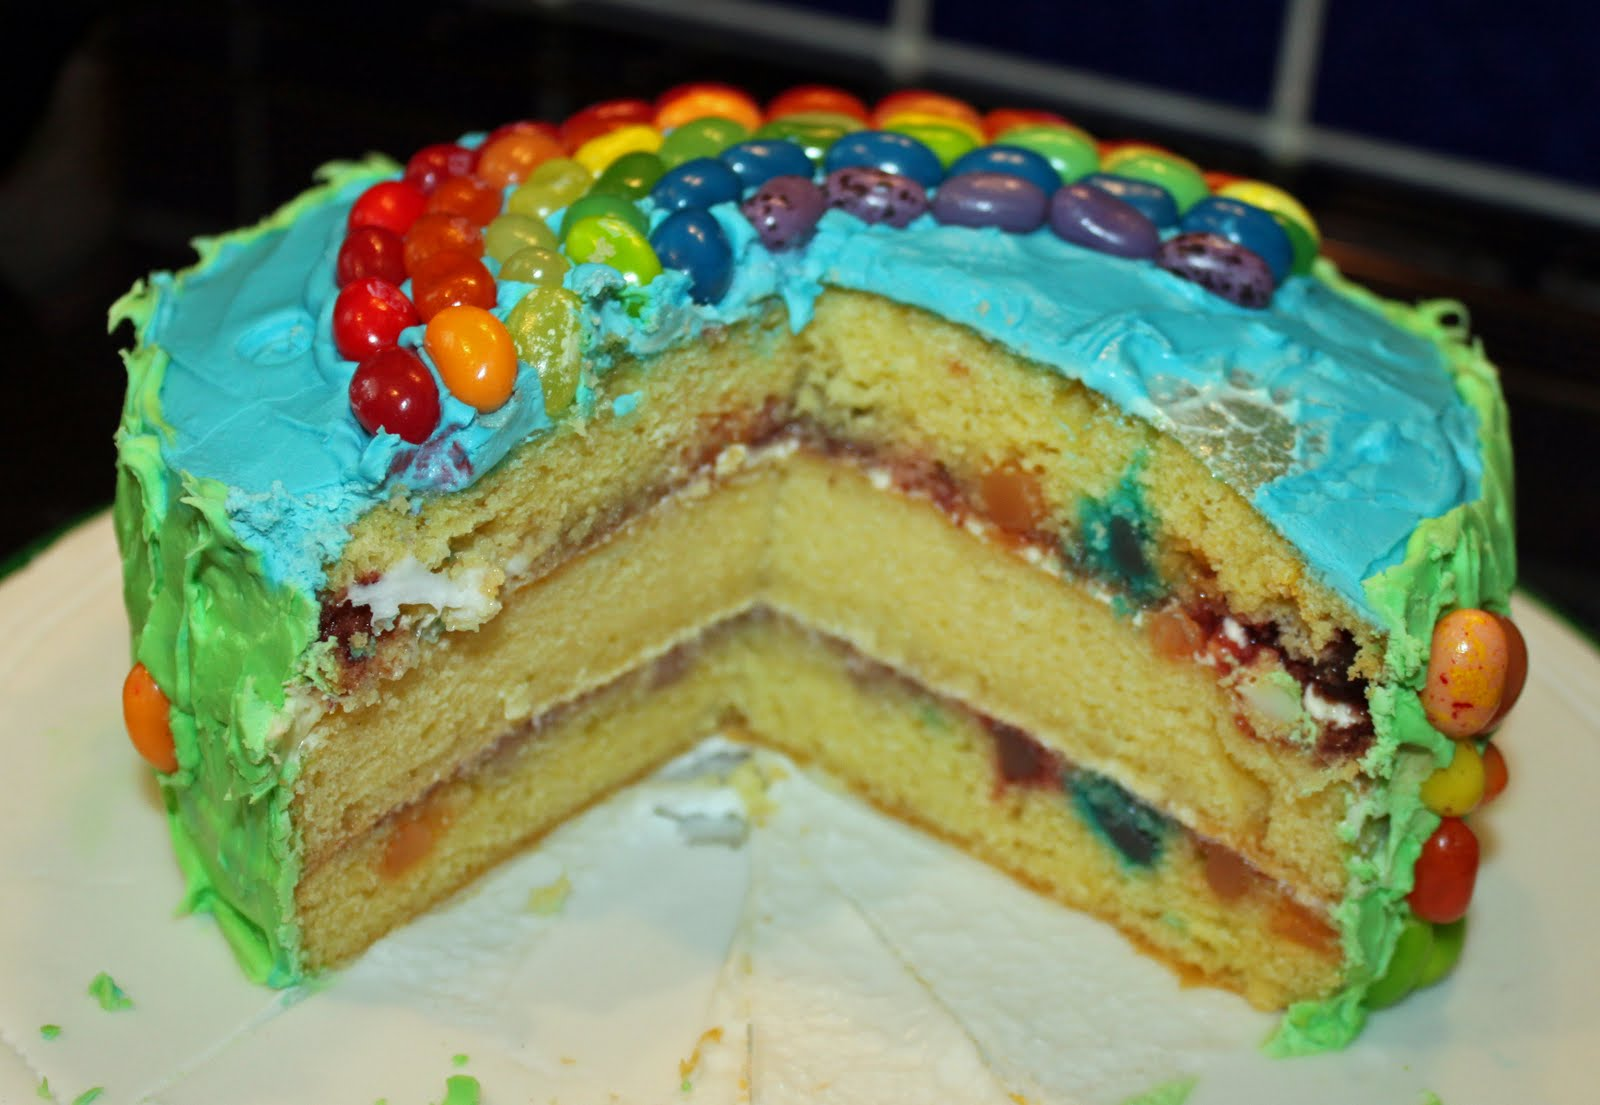 Cake Recipe Jelly Beans: Snowballs In Summer: Jelly Belly Jelly Bean Rainbow Cake